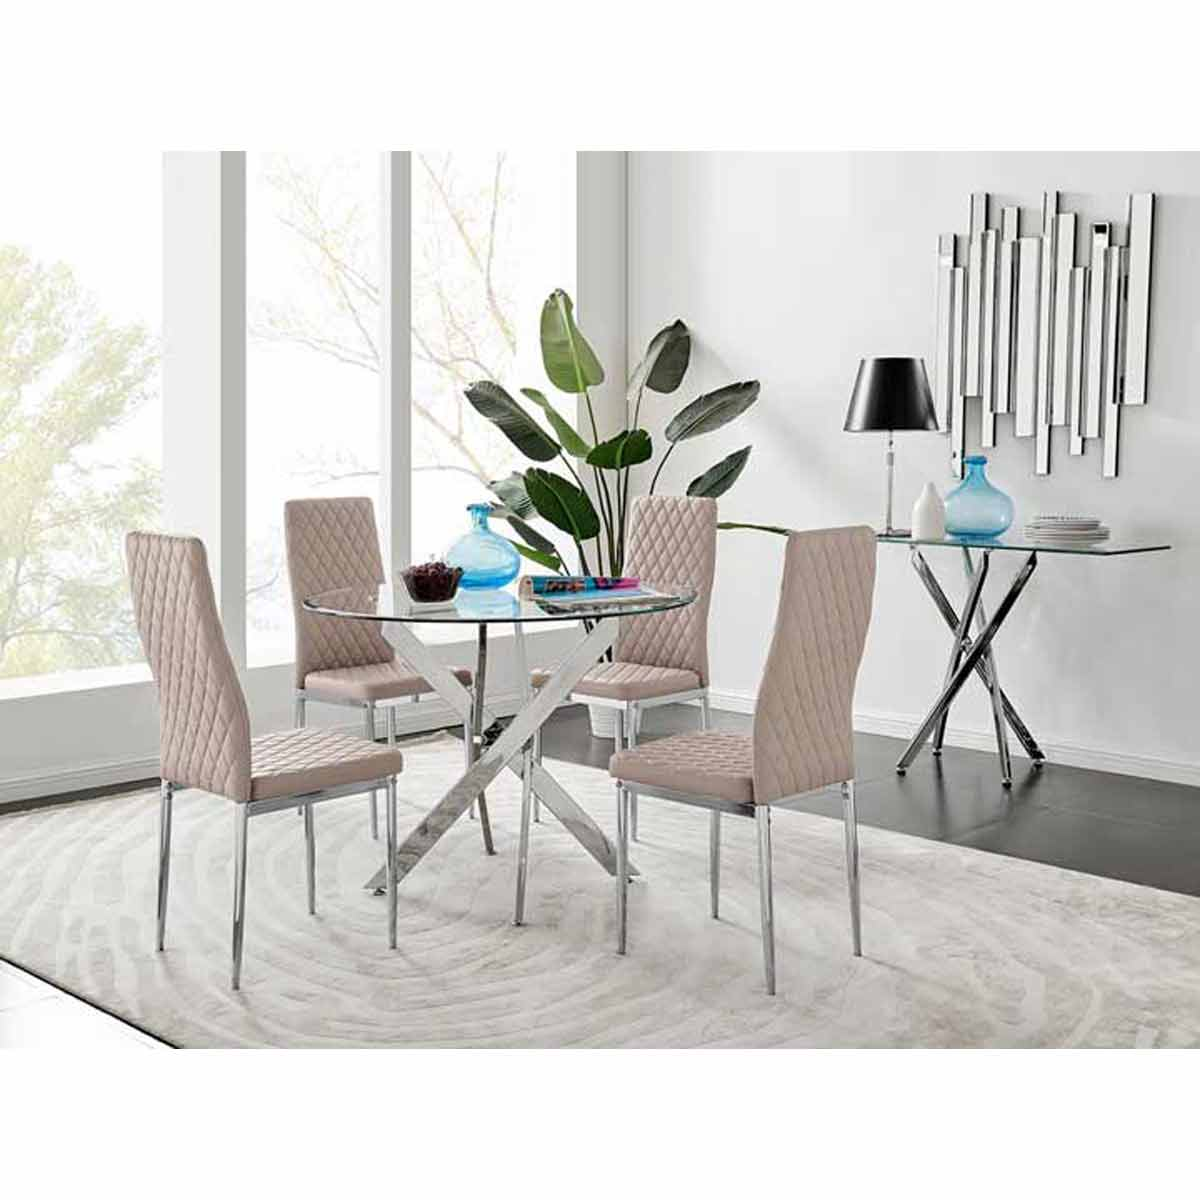 Furniture Box Novara Round Chrome Metal And Glass Dining Table And 4 Cappuccino Grey Milan Dining Chairs Set